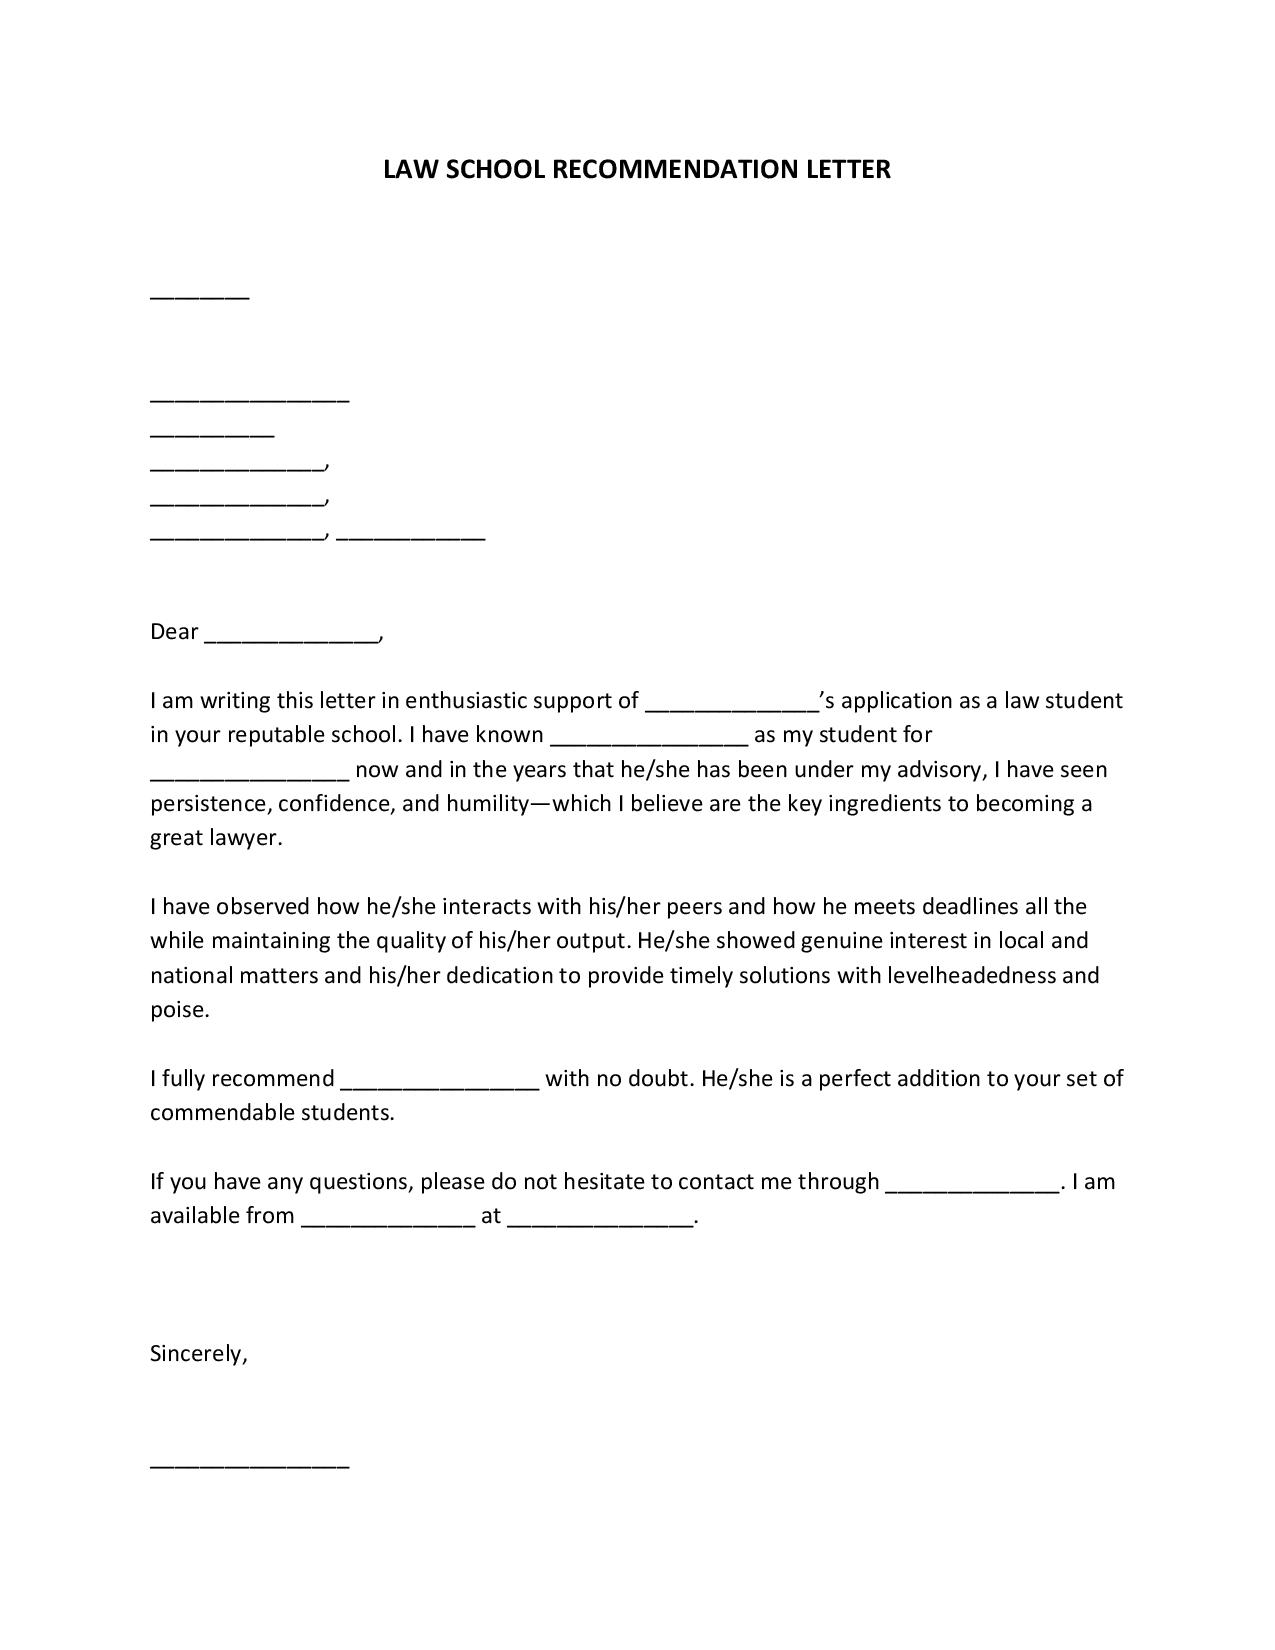 lawschoolrecommendationletter